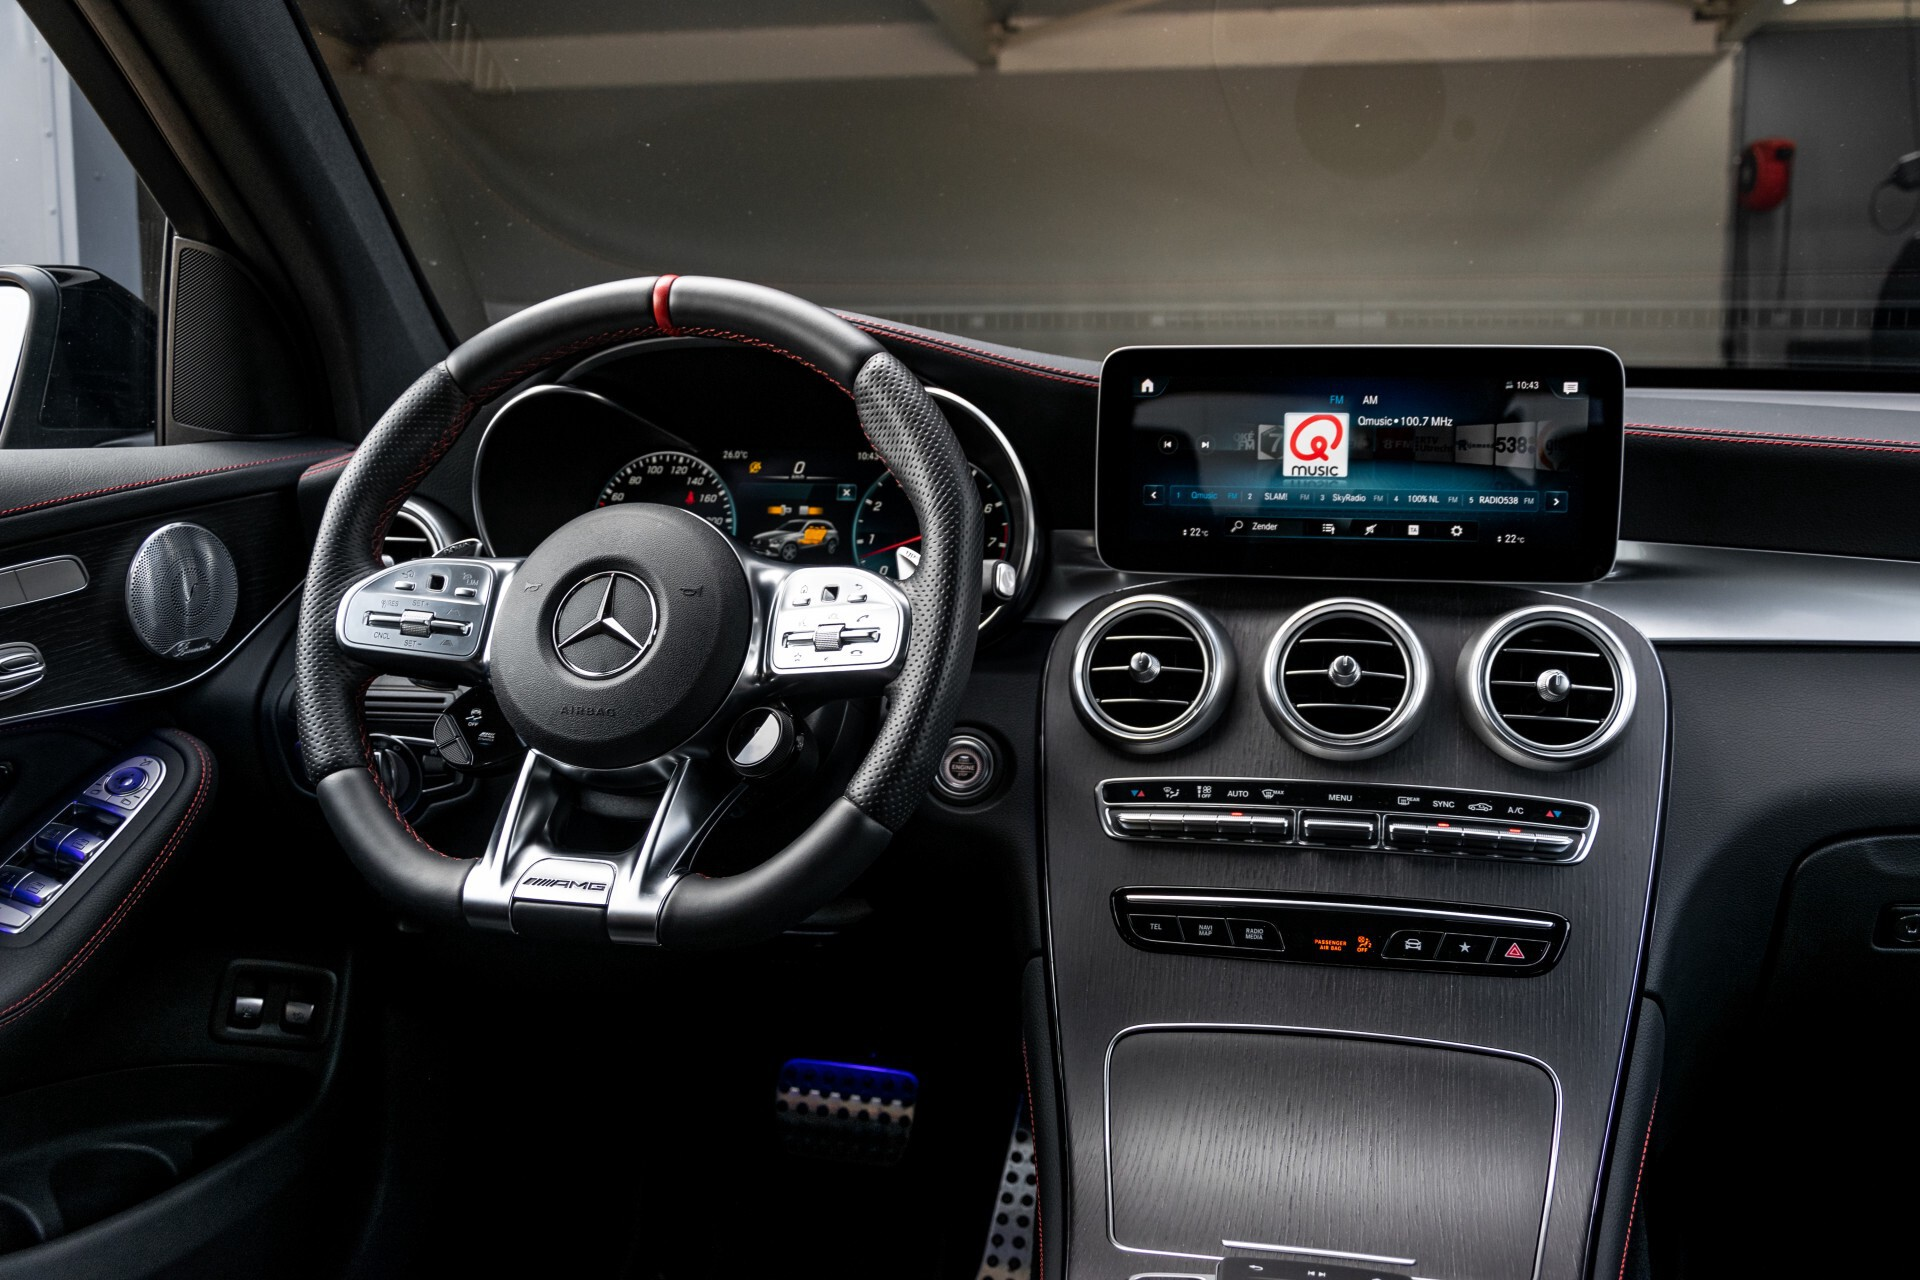 Mercedes-Benz GLC 43 AMG 4-M Night Pano/Sportuitlaat/Keyless/Distronic/Widescreen/MBUX/Trekhaak Aut9 Foto 7